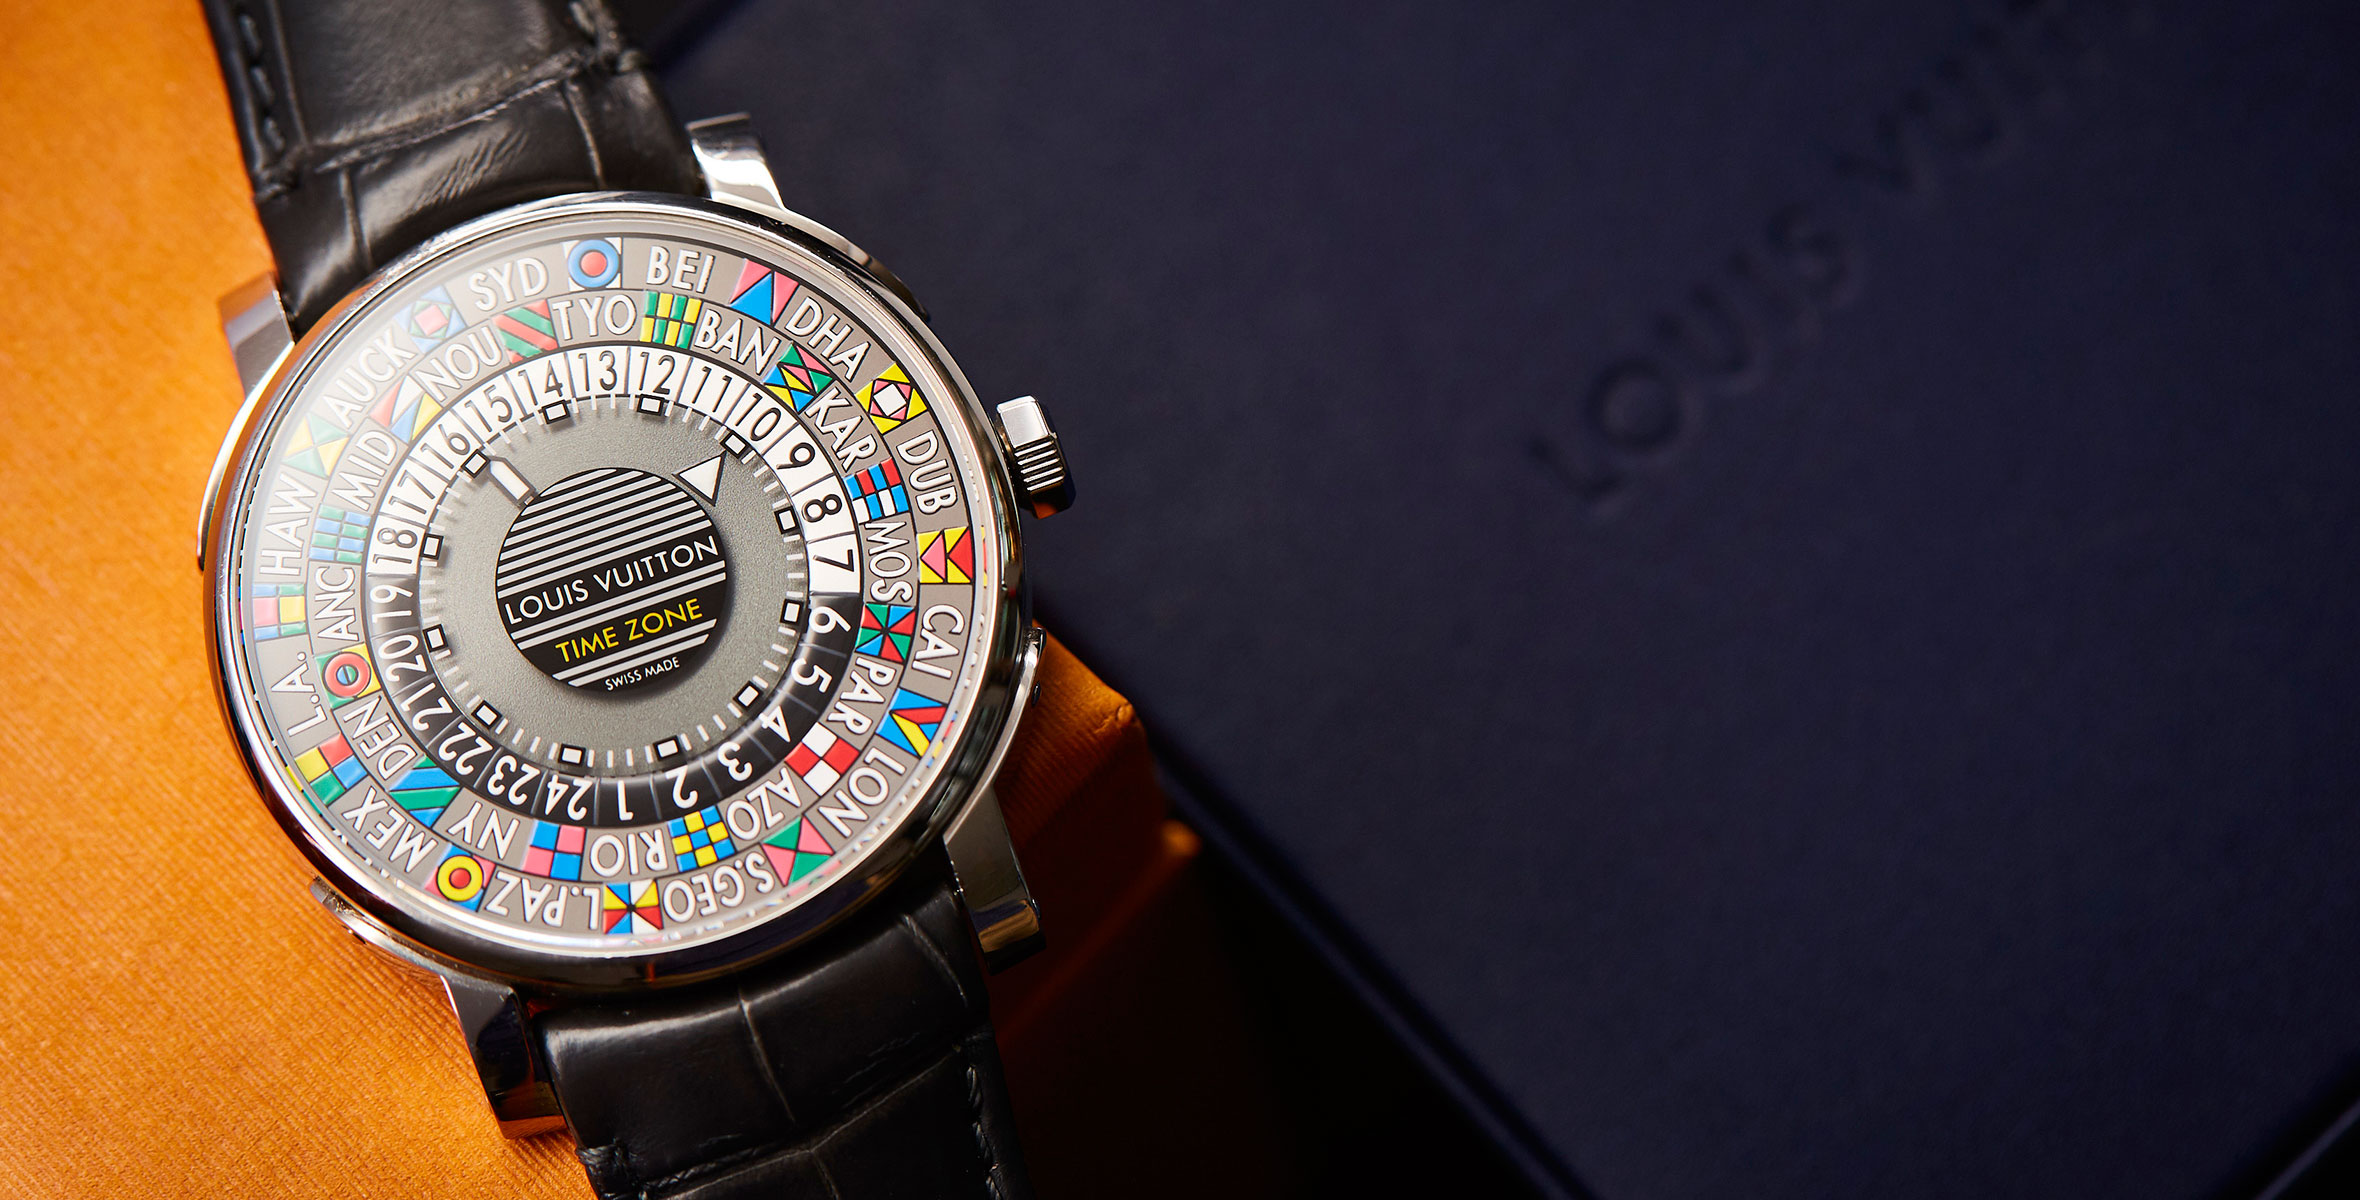 A fashionable watch with a watchmaking heart – the Louis Vuitton Escale Time Zone